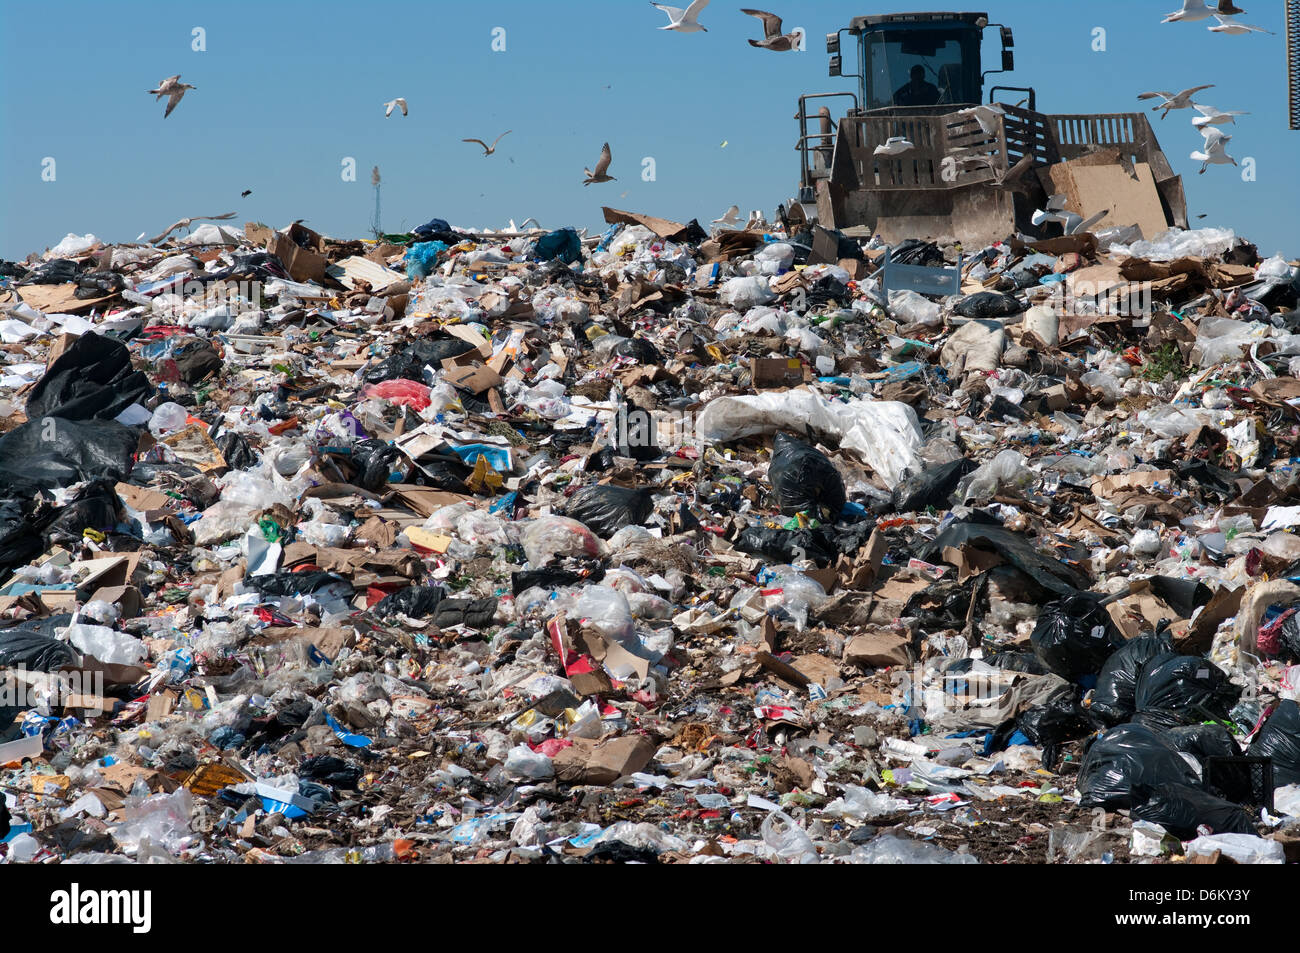 Caterpillar compactor working in a landfill - Stock Image